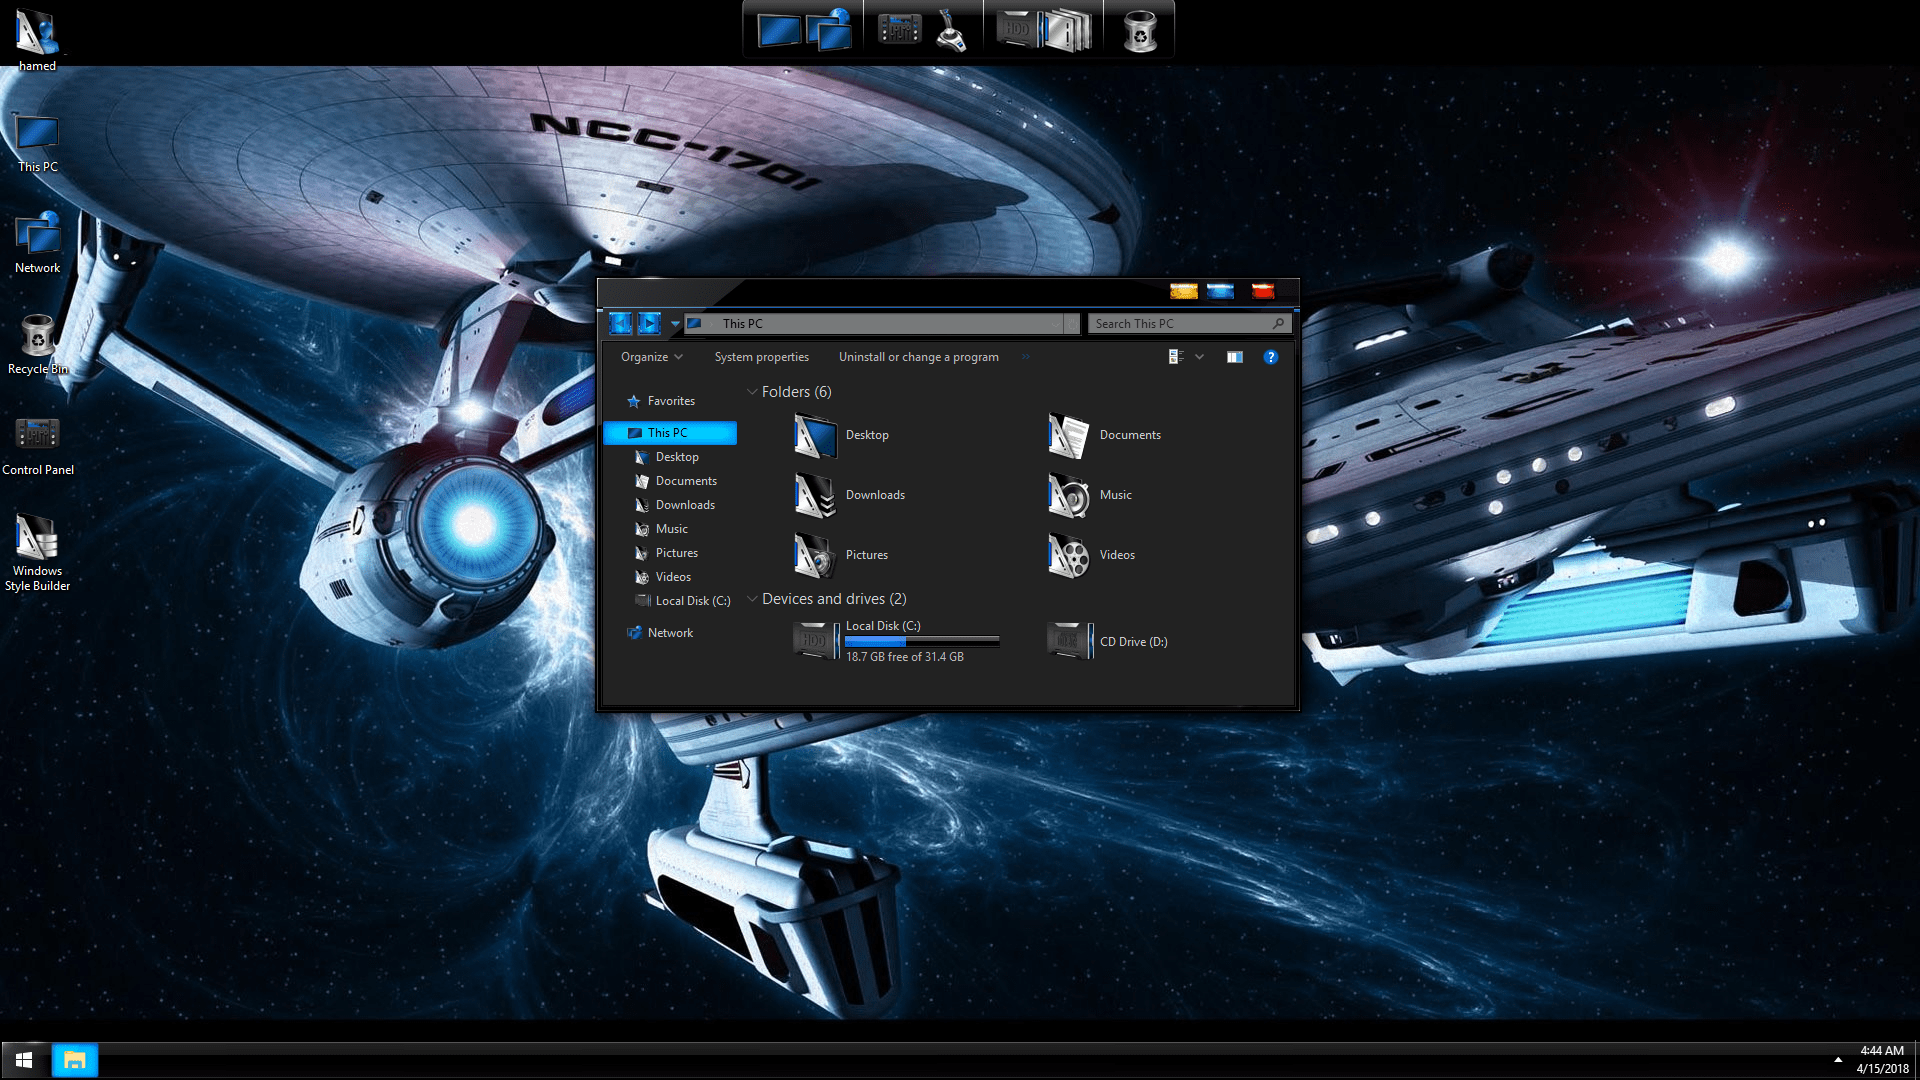 Star Trek Black Red SkinPack for Win7/10 19H2